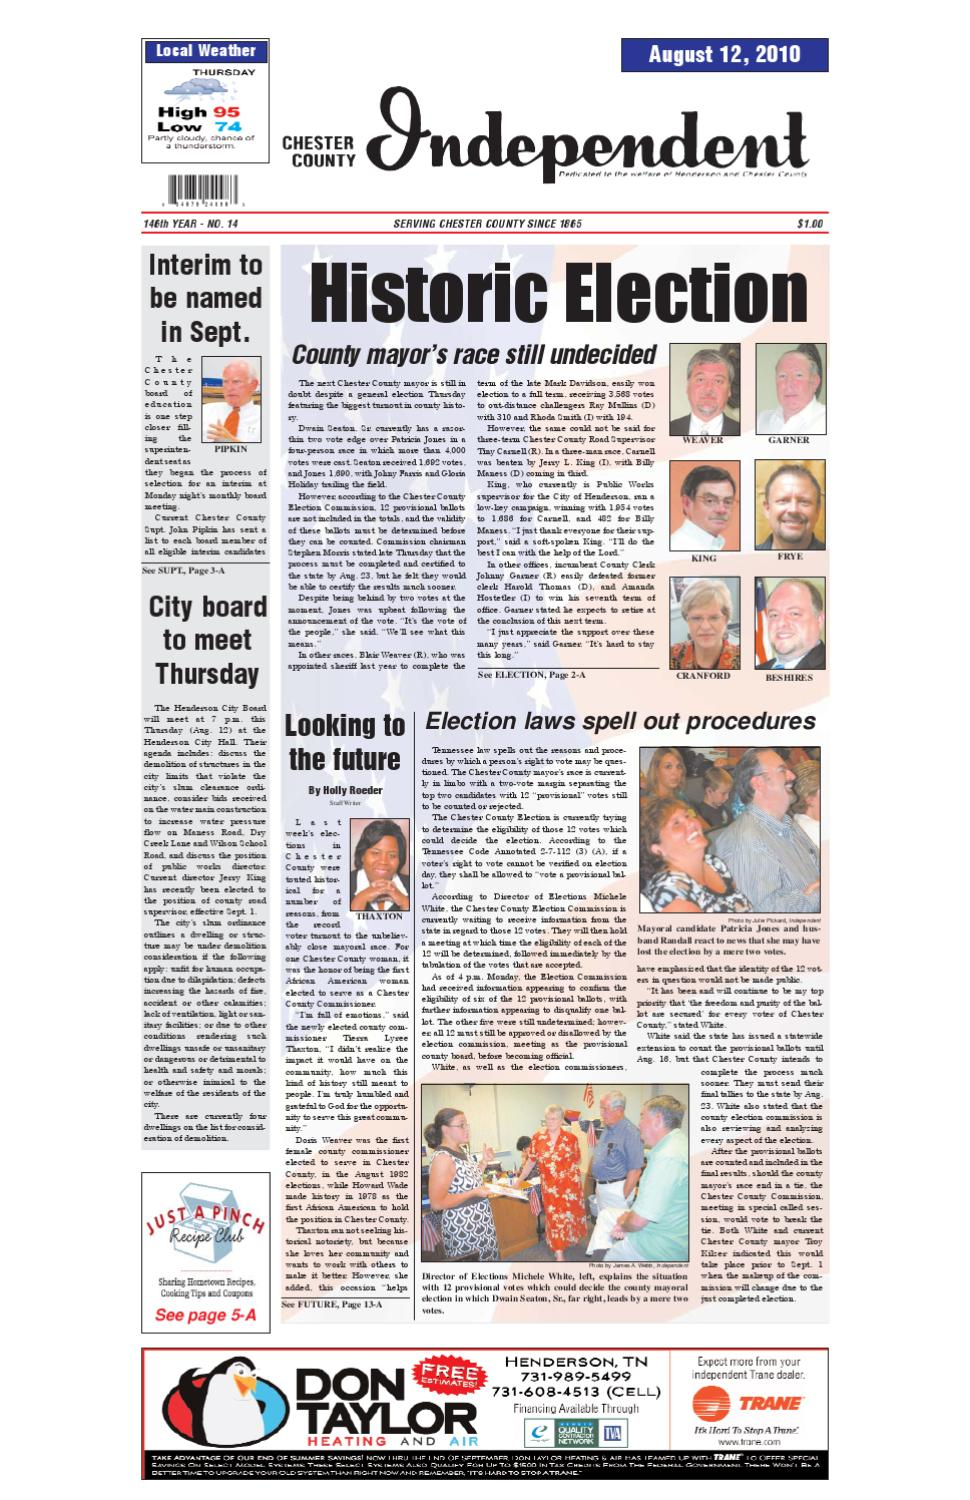 Tennessee chester county enville - Chester County Independent 08 12 10 By Chester County Independent Issuu